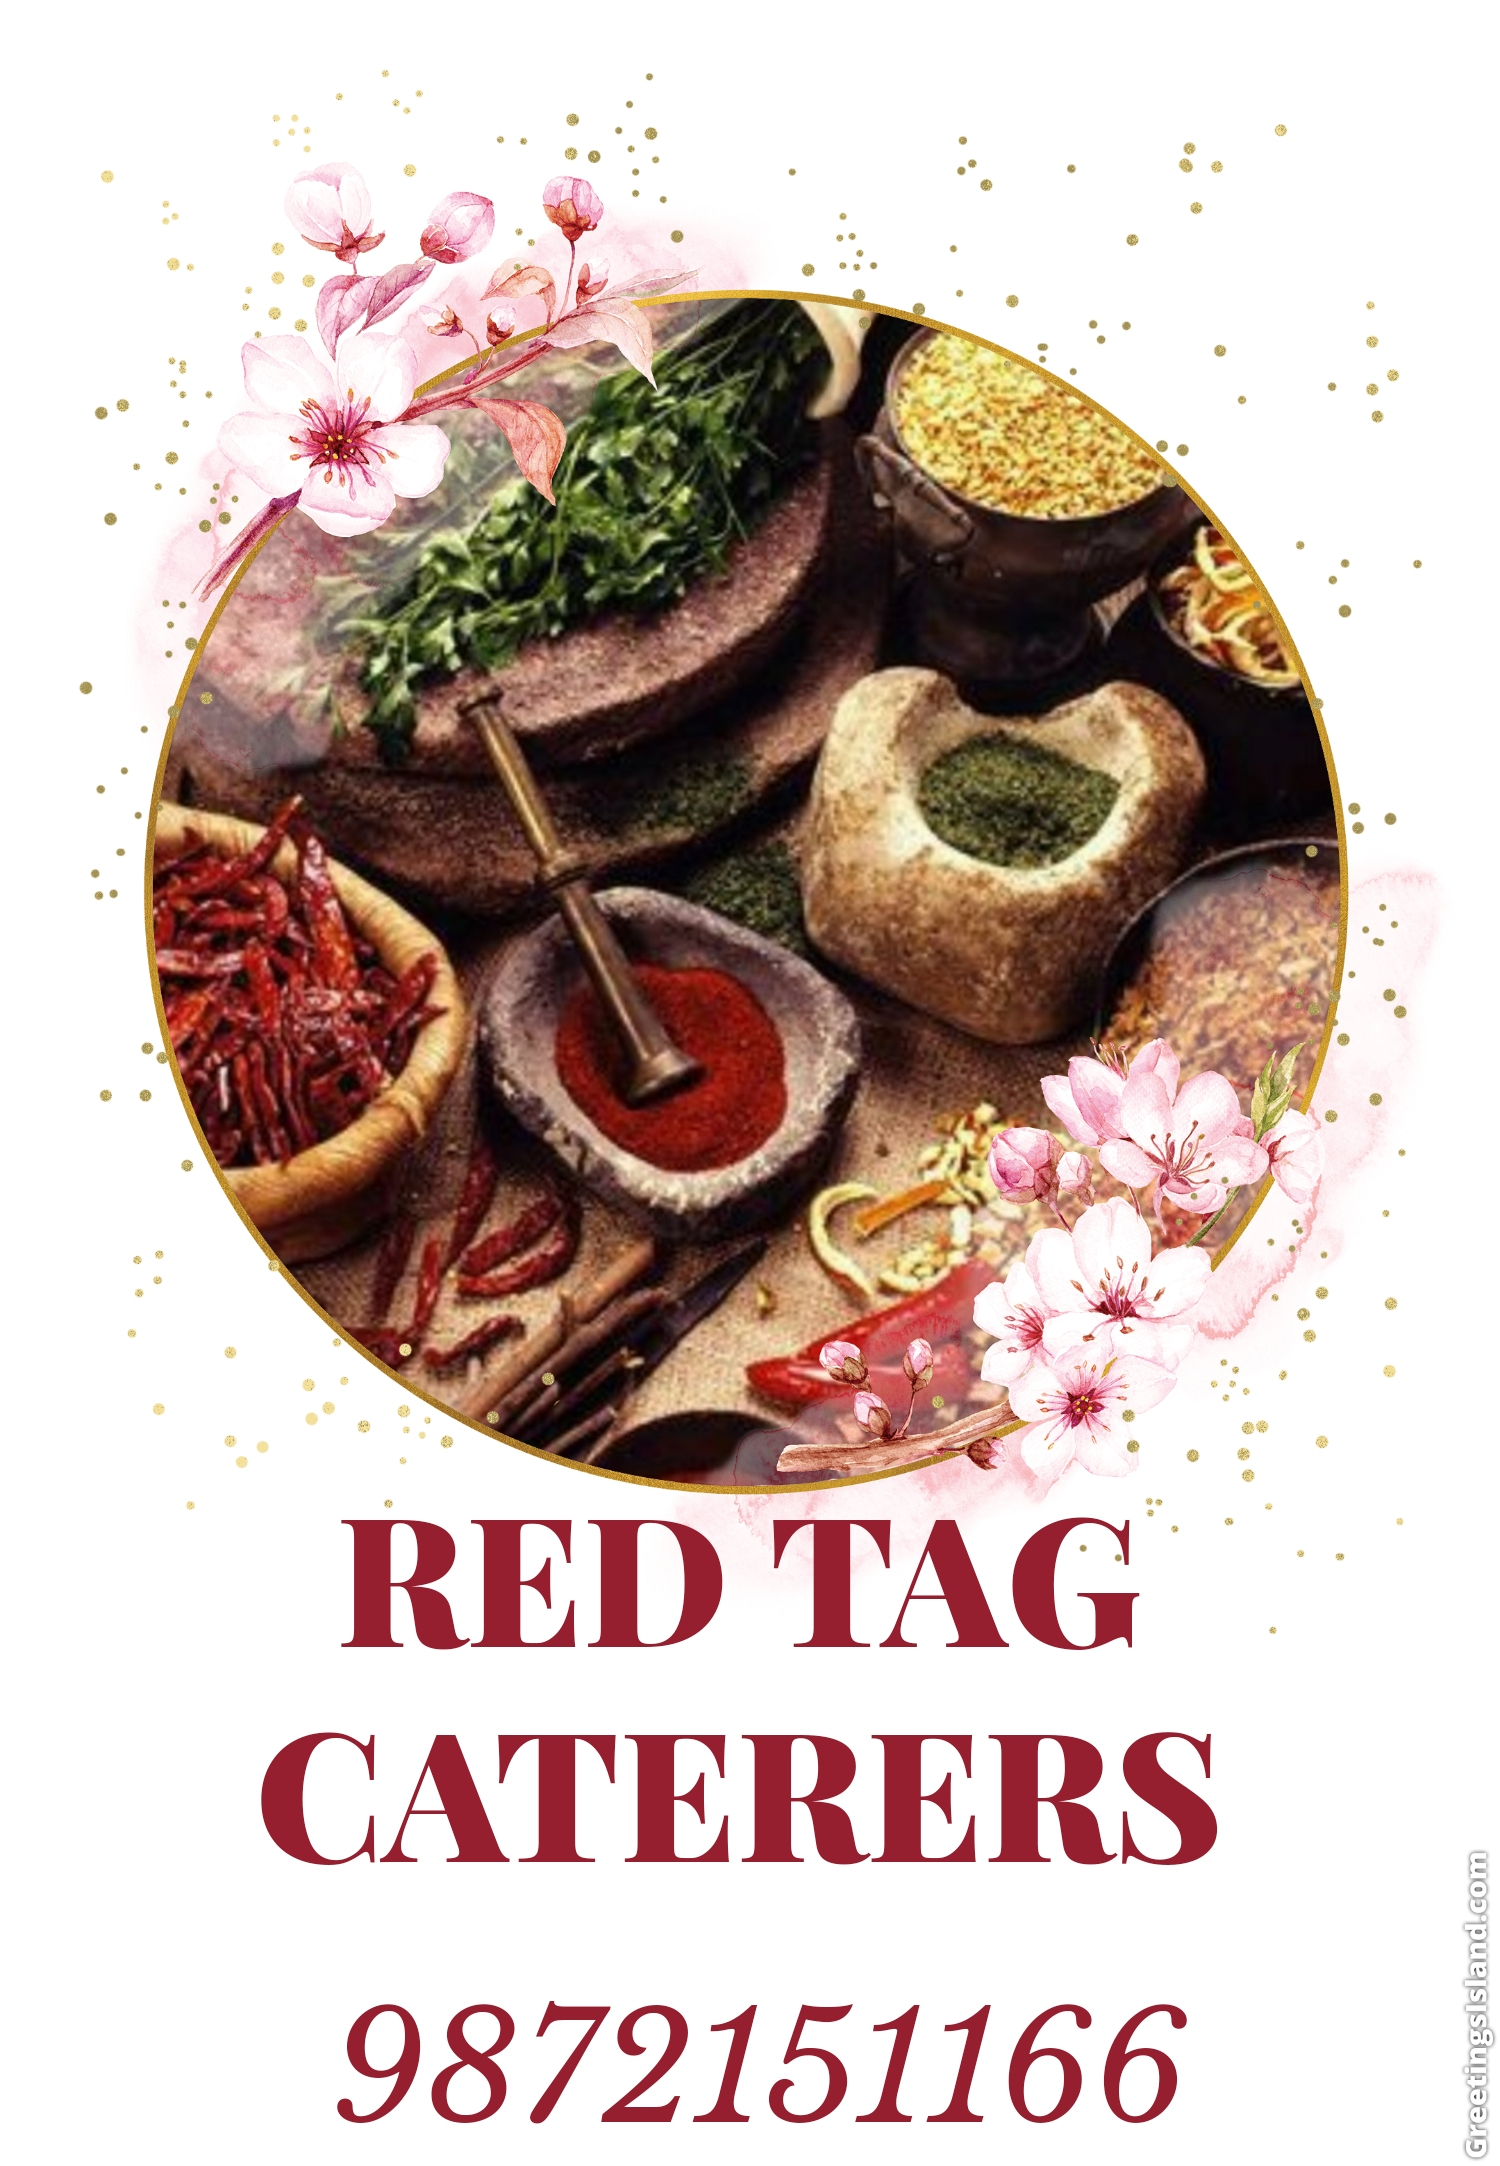 Red Tag Caterers, Impeccable catering service in Mohali and zirakpur, top caterer in Mohali, incredible cater in Mohali,